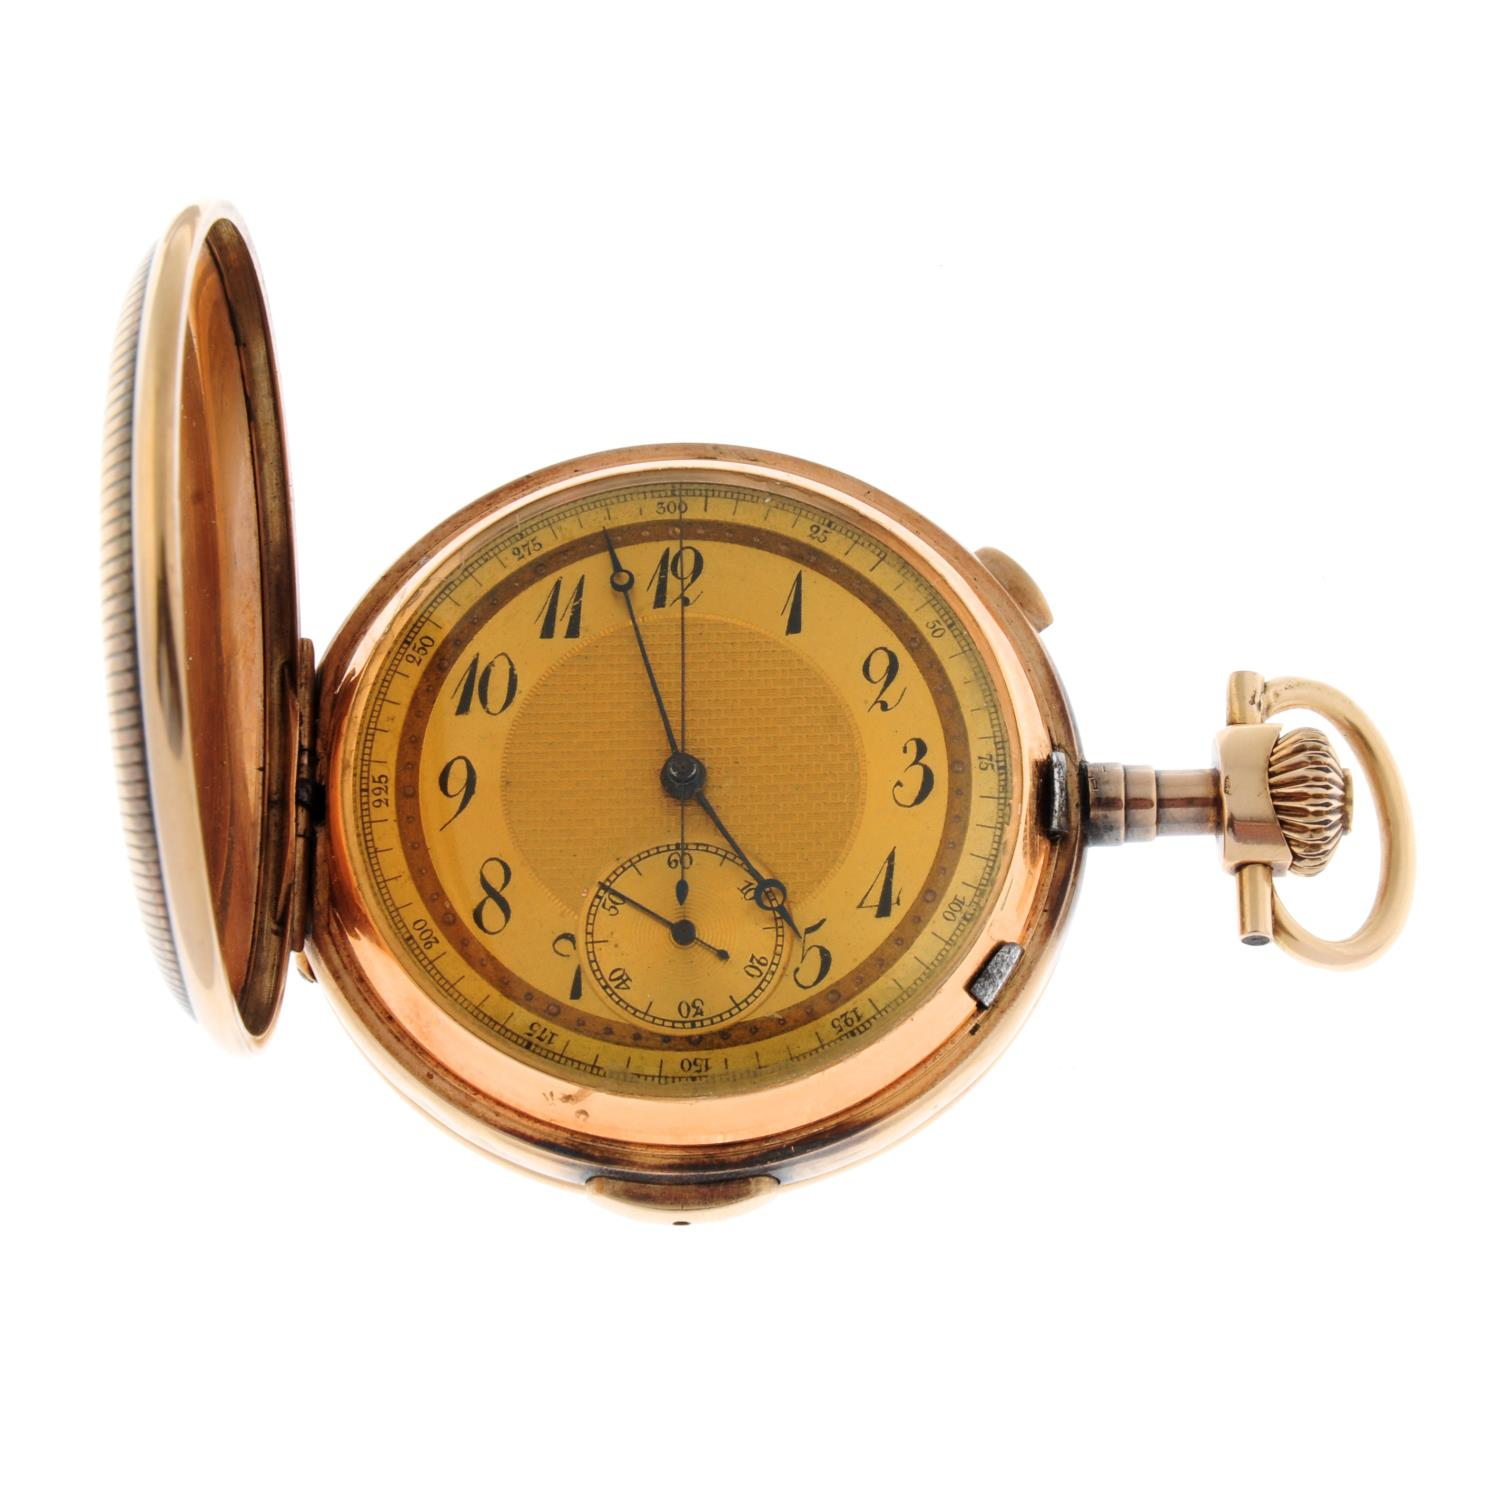 A full hunter chronograph repeater pocket watch.